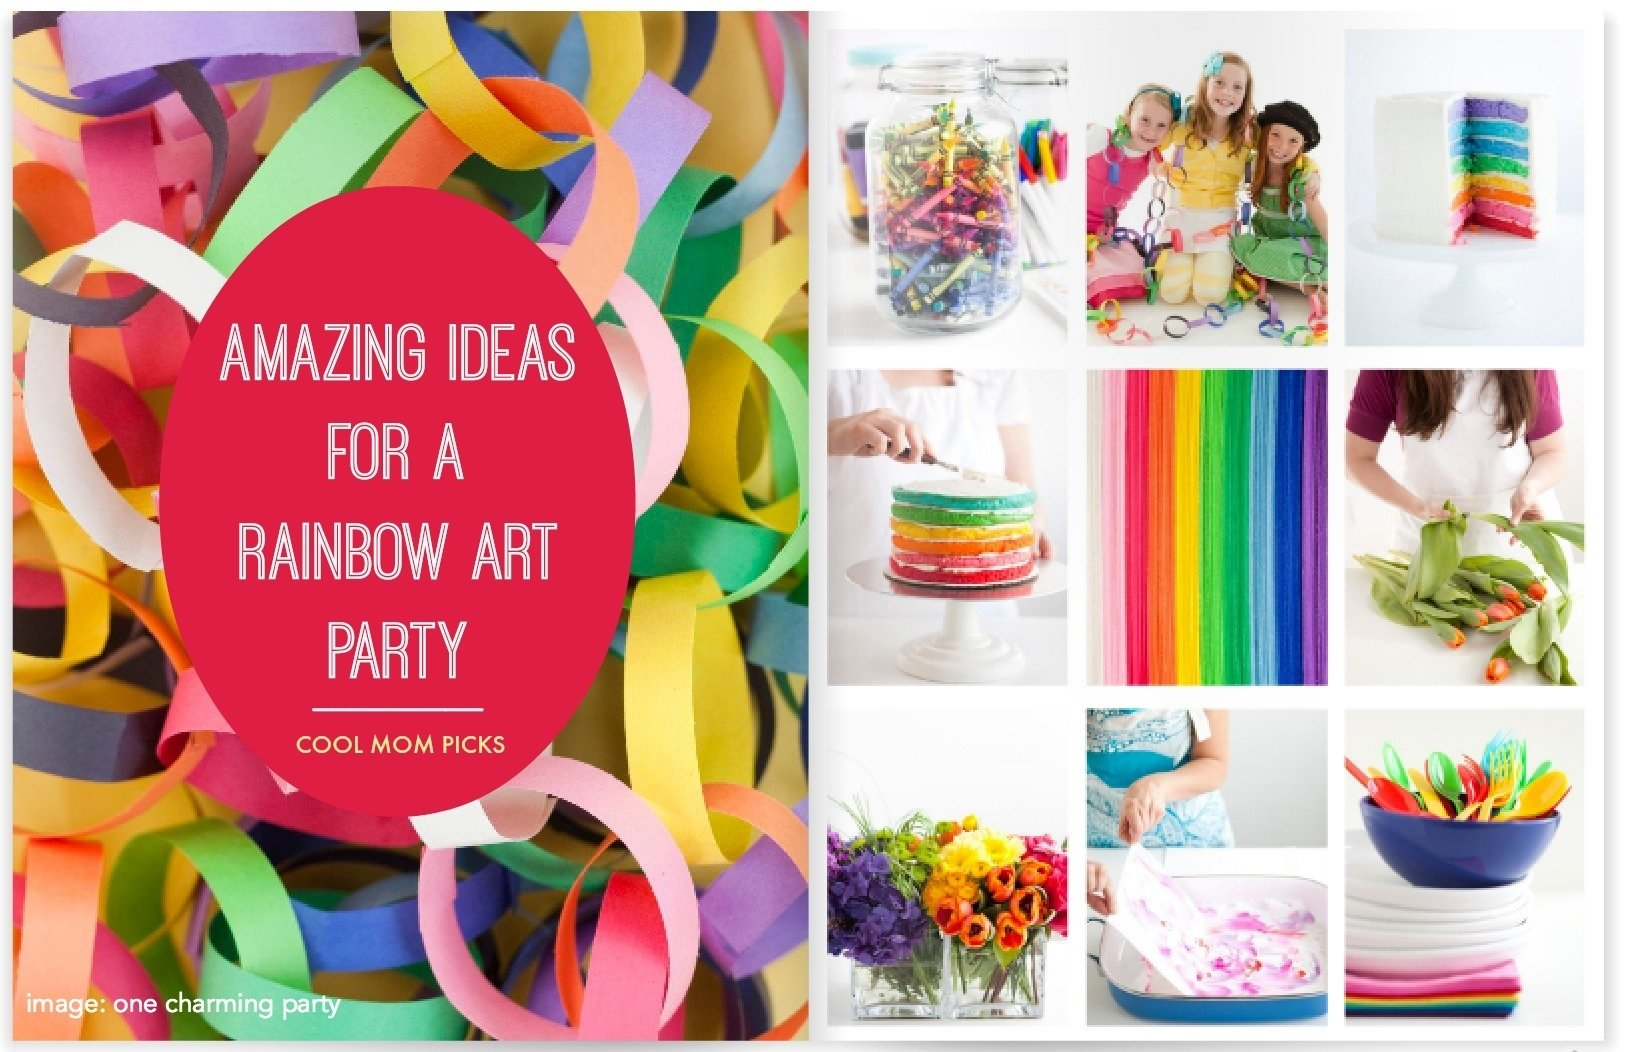 how to throw a rainbow art party: ideas with a creative twist